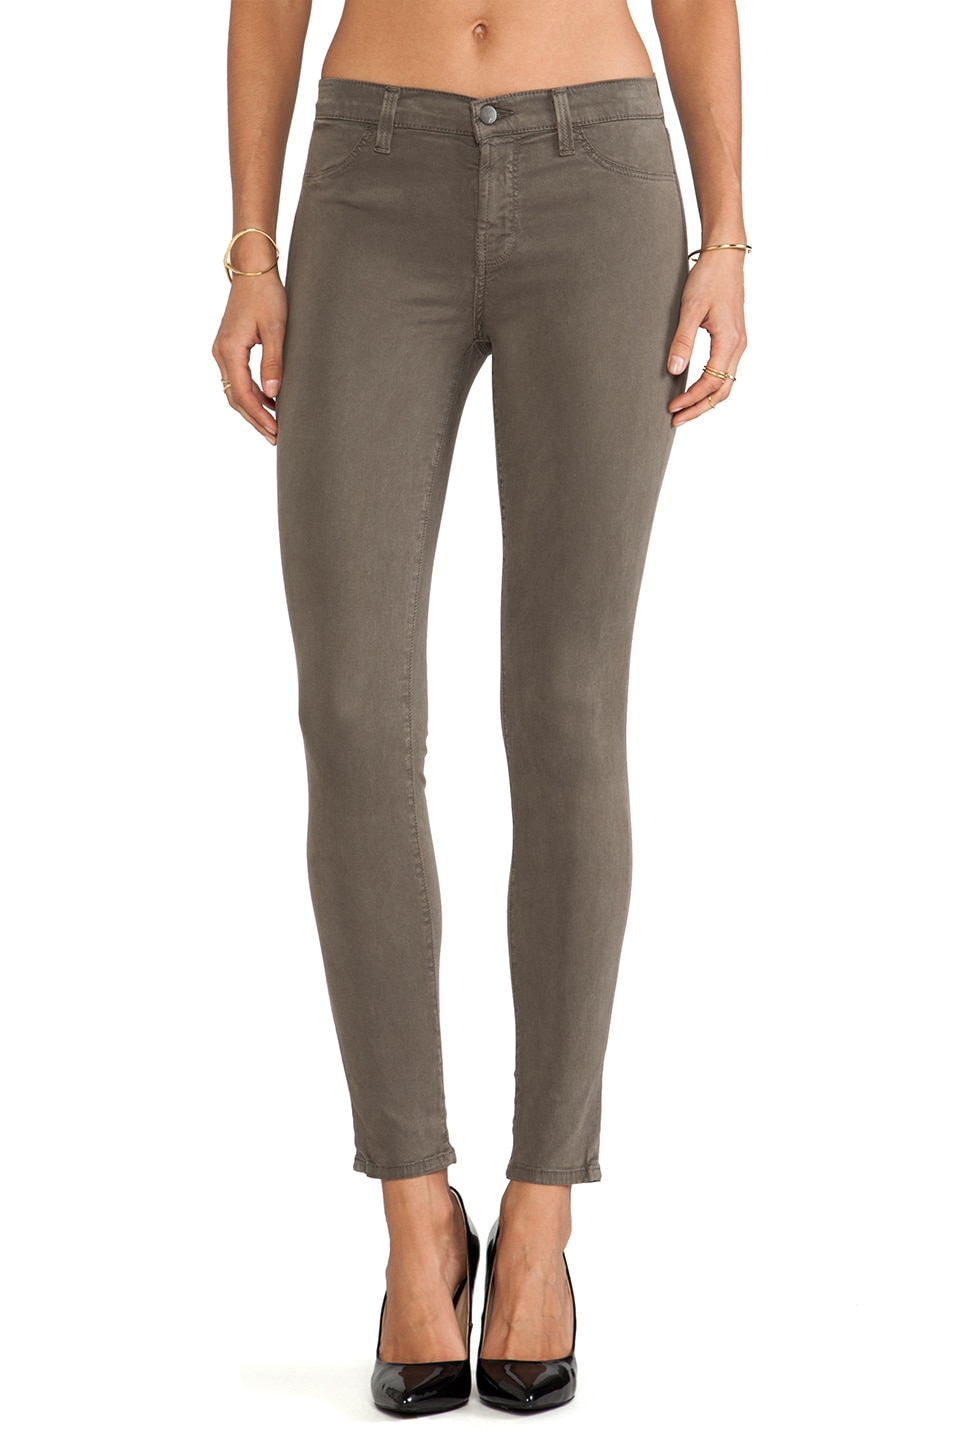 J Brand Mid Rise Skinny in Cypress